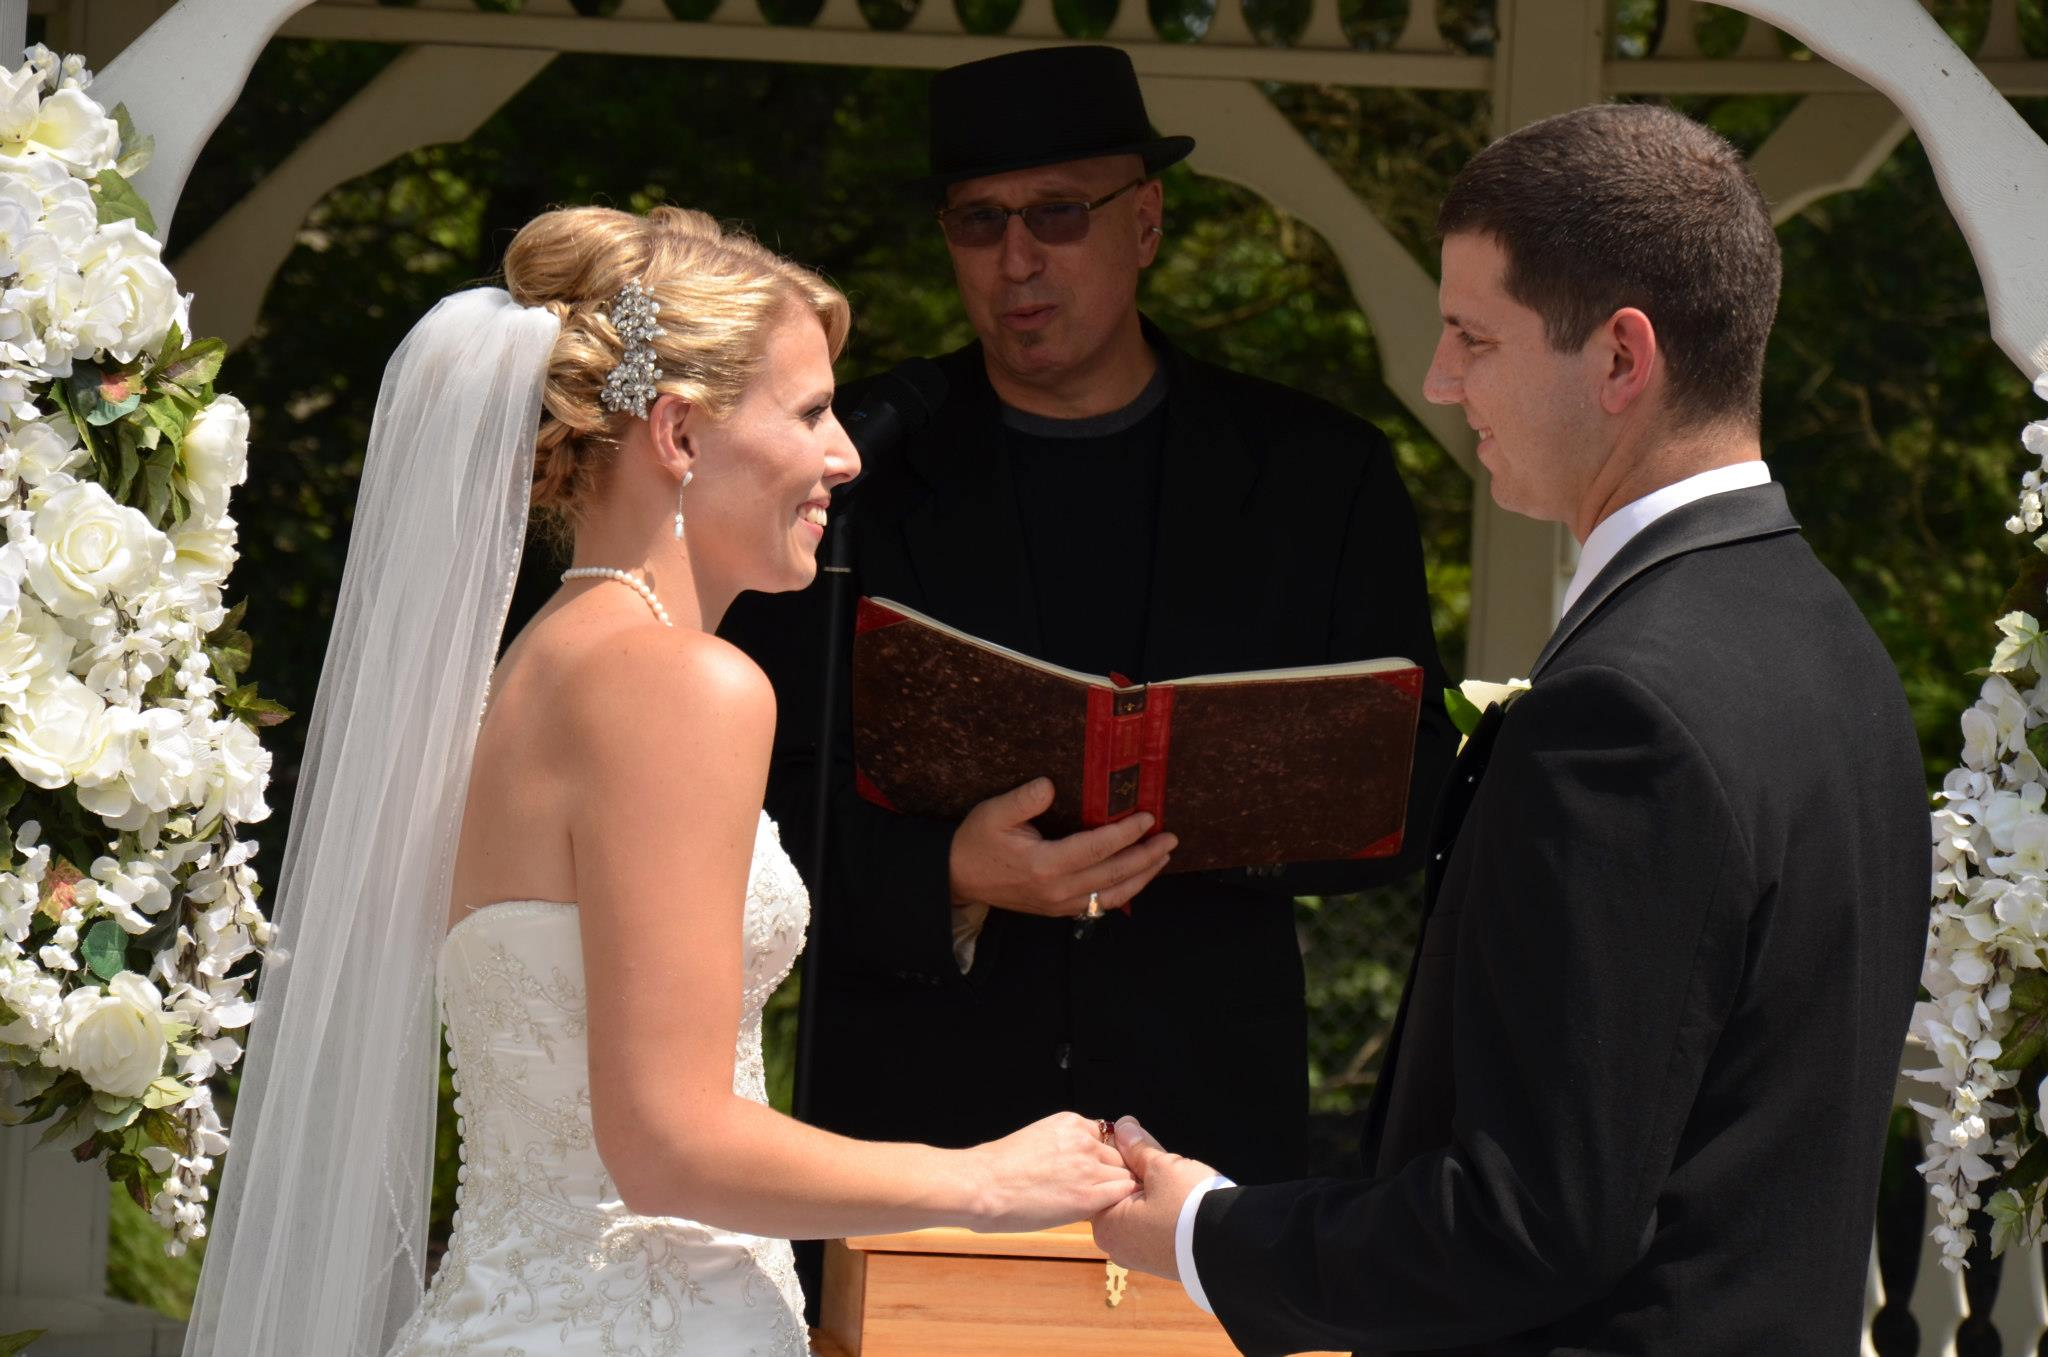 Wedding Officiant Services Hudson Valley Ceremonies